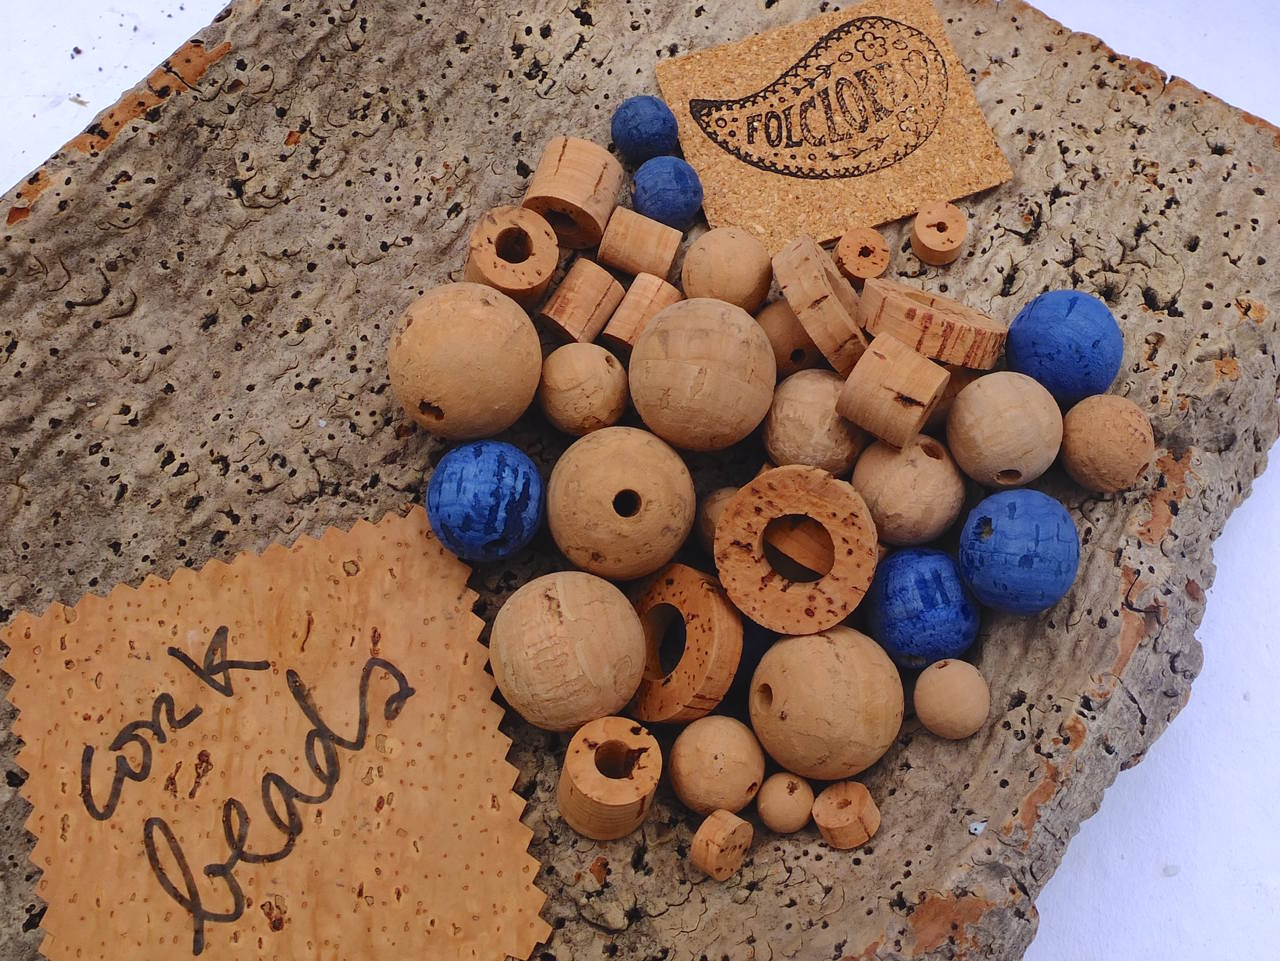 cork beads for vegan jewelry, spheres, rings and discs, eco-friendly craft supplies